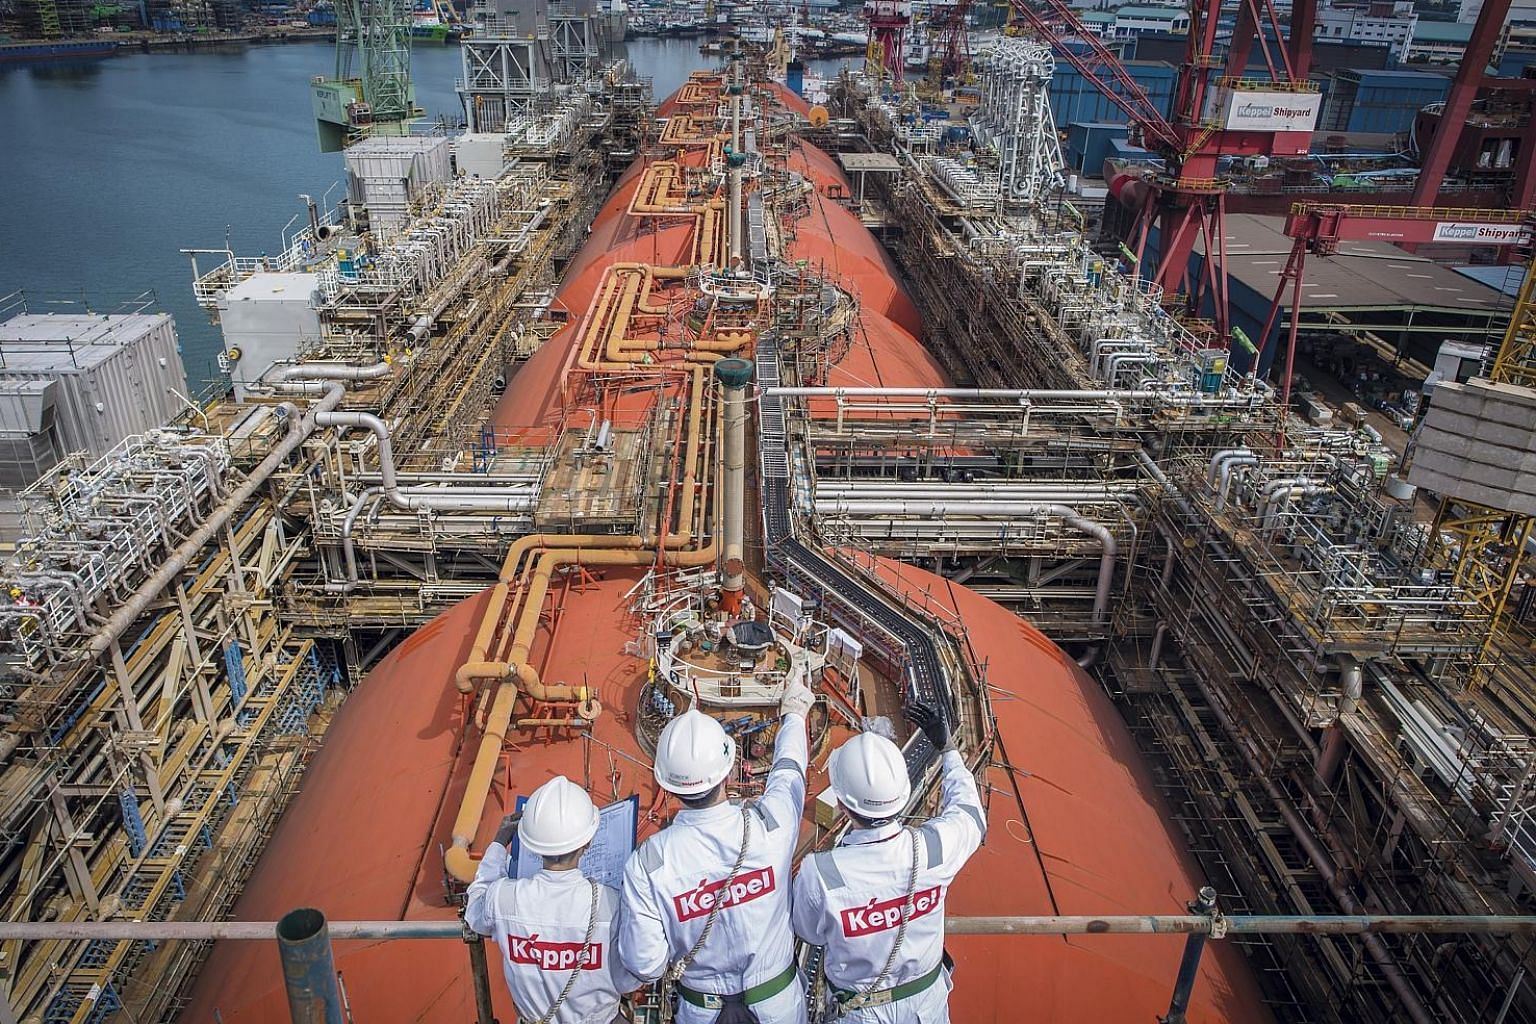 Keppel Offshore & Marine completed the world's first converted floating liquefaction vessel (right) last year. The company's subsidiary has been engaged to design and construct an ice-class liquefied natural gas bunker vessel by the fourth quarter of